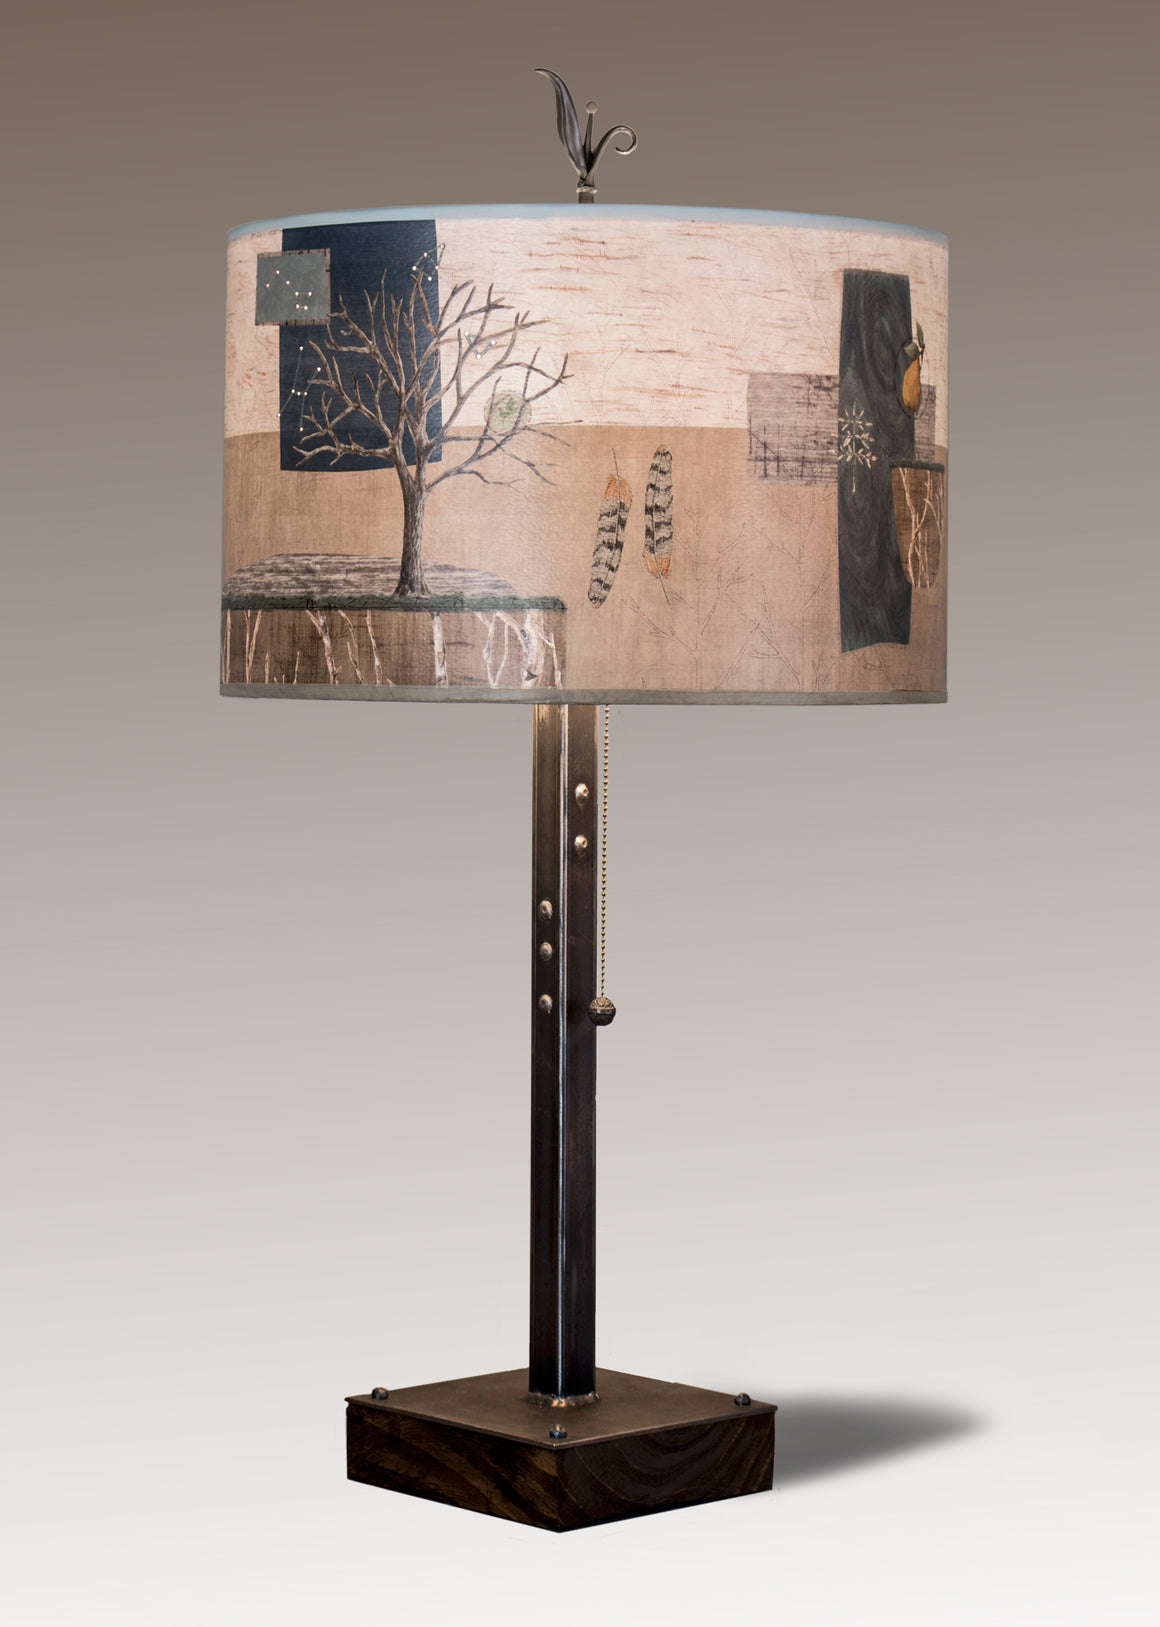 Steel Table Lamp on Wood with Large Drum Shade in Wander in Drift